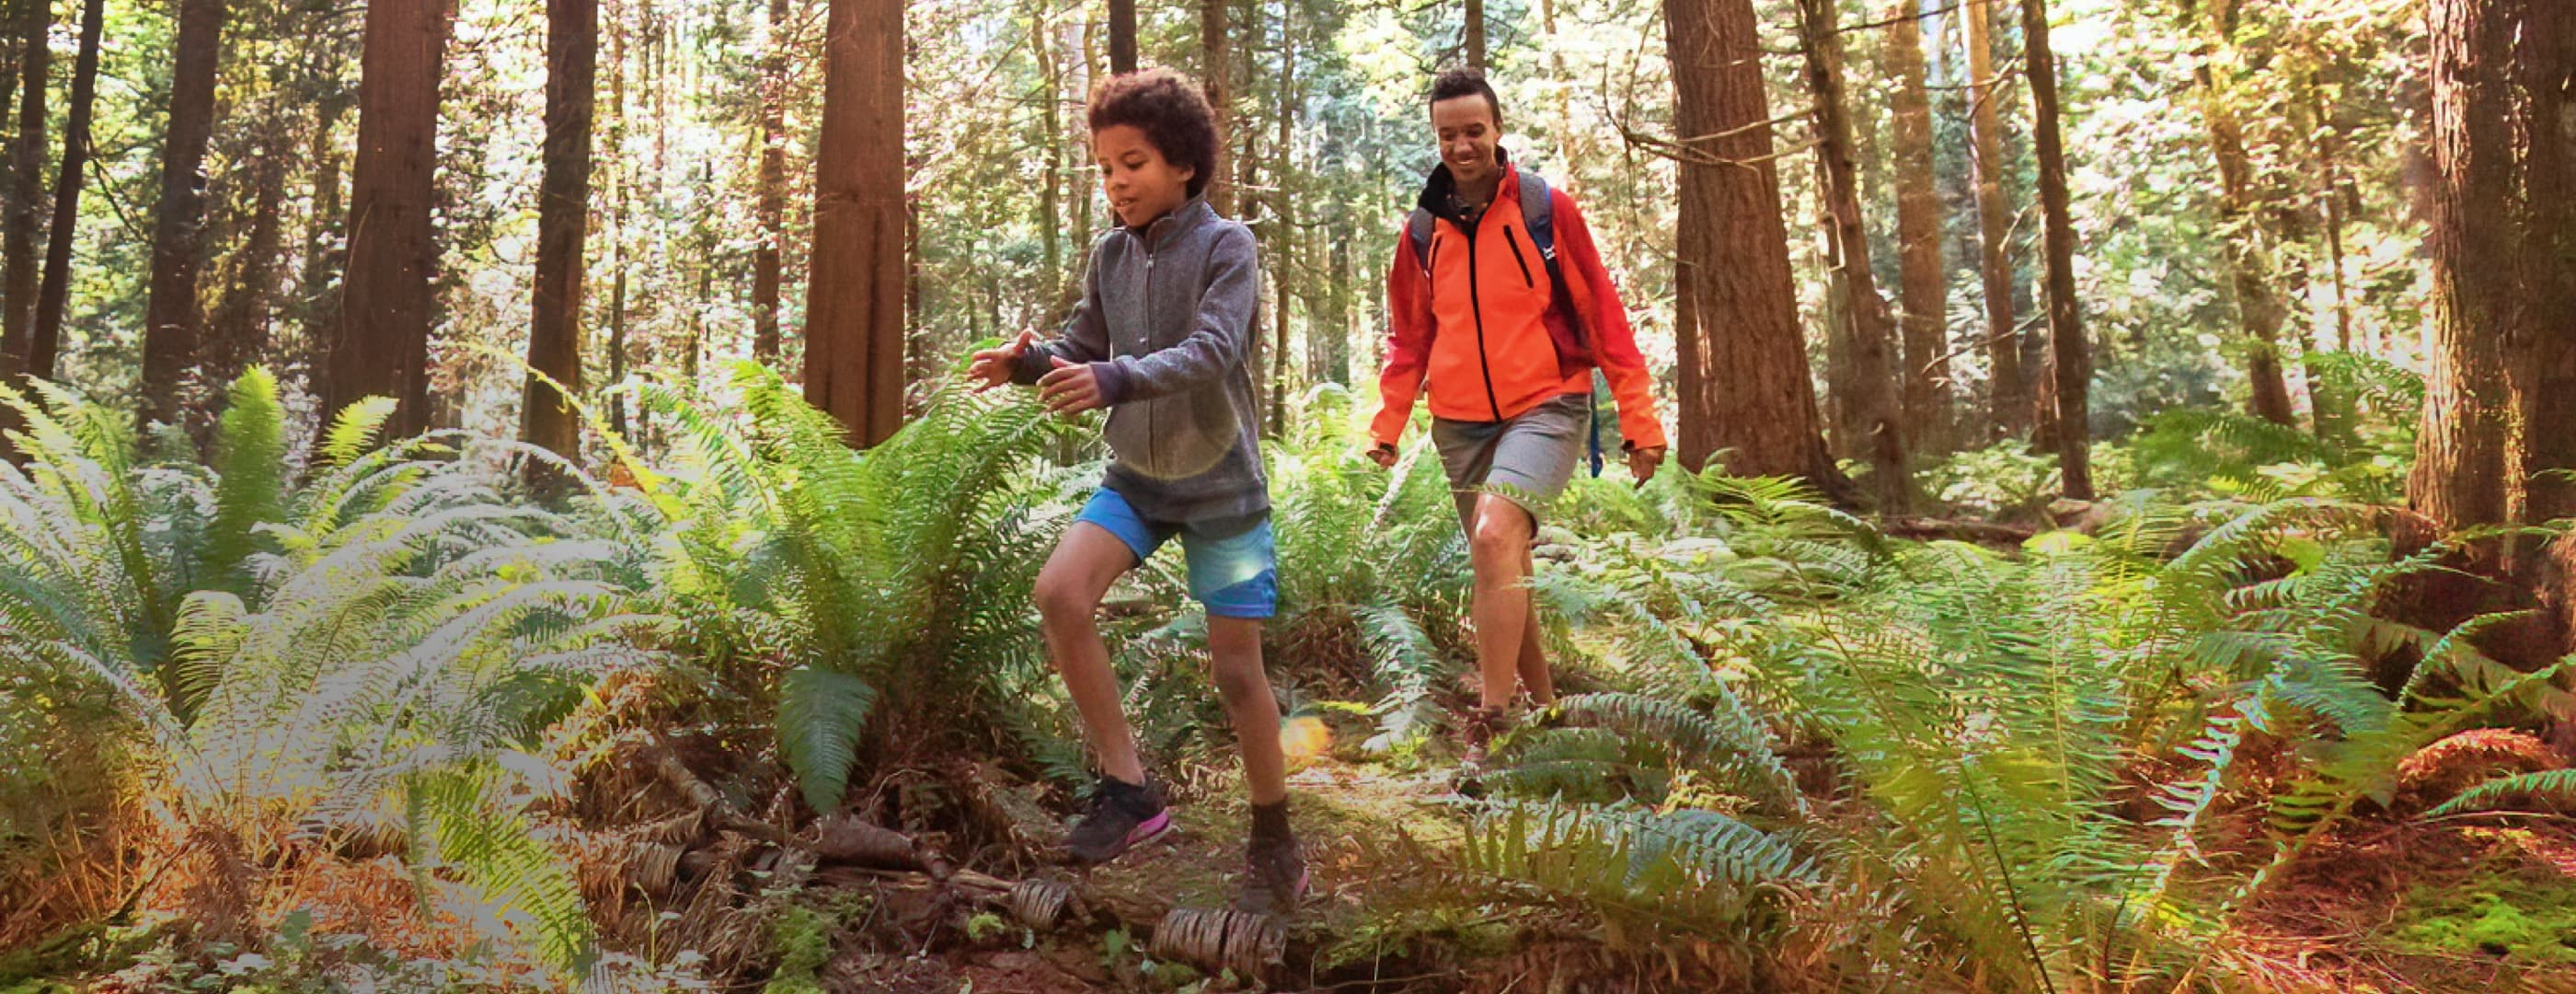 An adult in an orange raincoat and a child in a grey sweatshirt with dark hair are hiking through a forest, the adult smiles as the child skips over a small log on the trail.